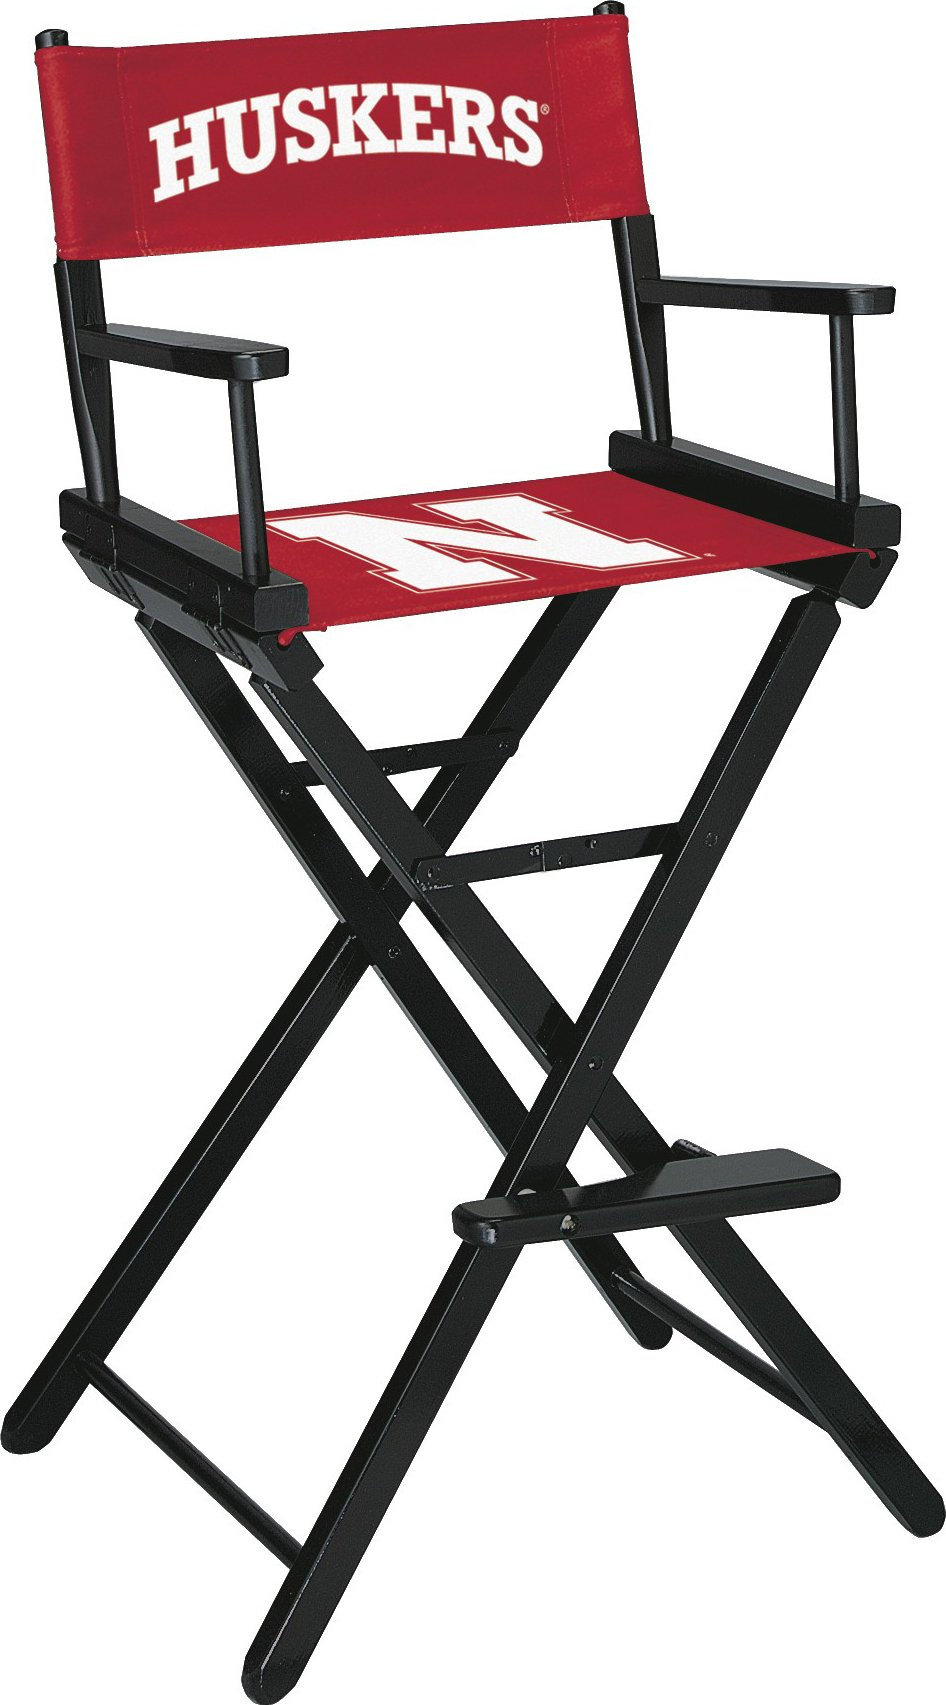 Imperial Officially Licensed NCAA Merchandise: Directors Chair (Tall, Bar Height), Nebraska Cornhuskers